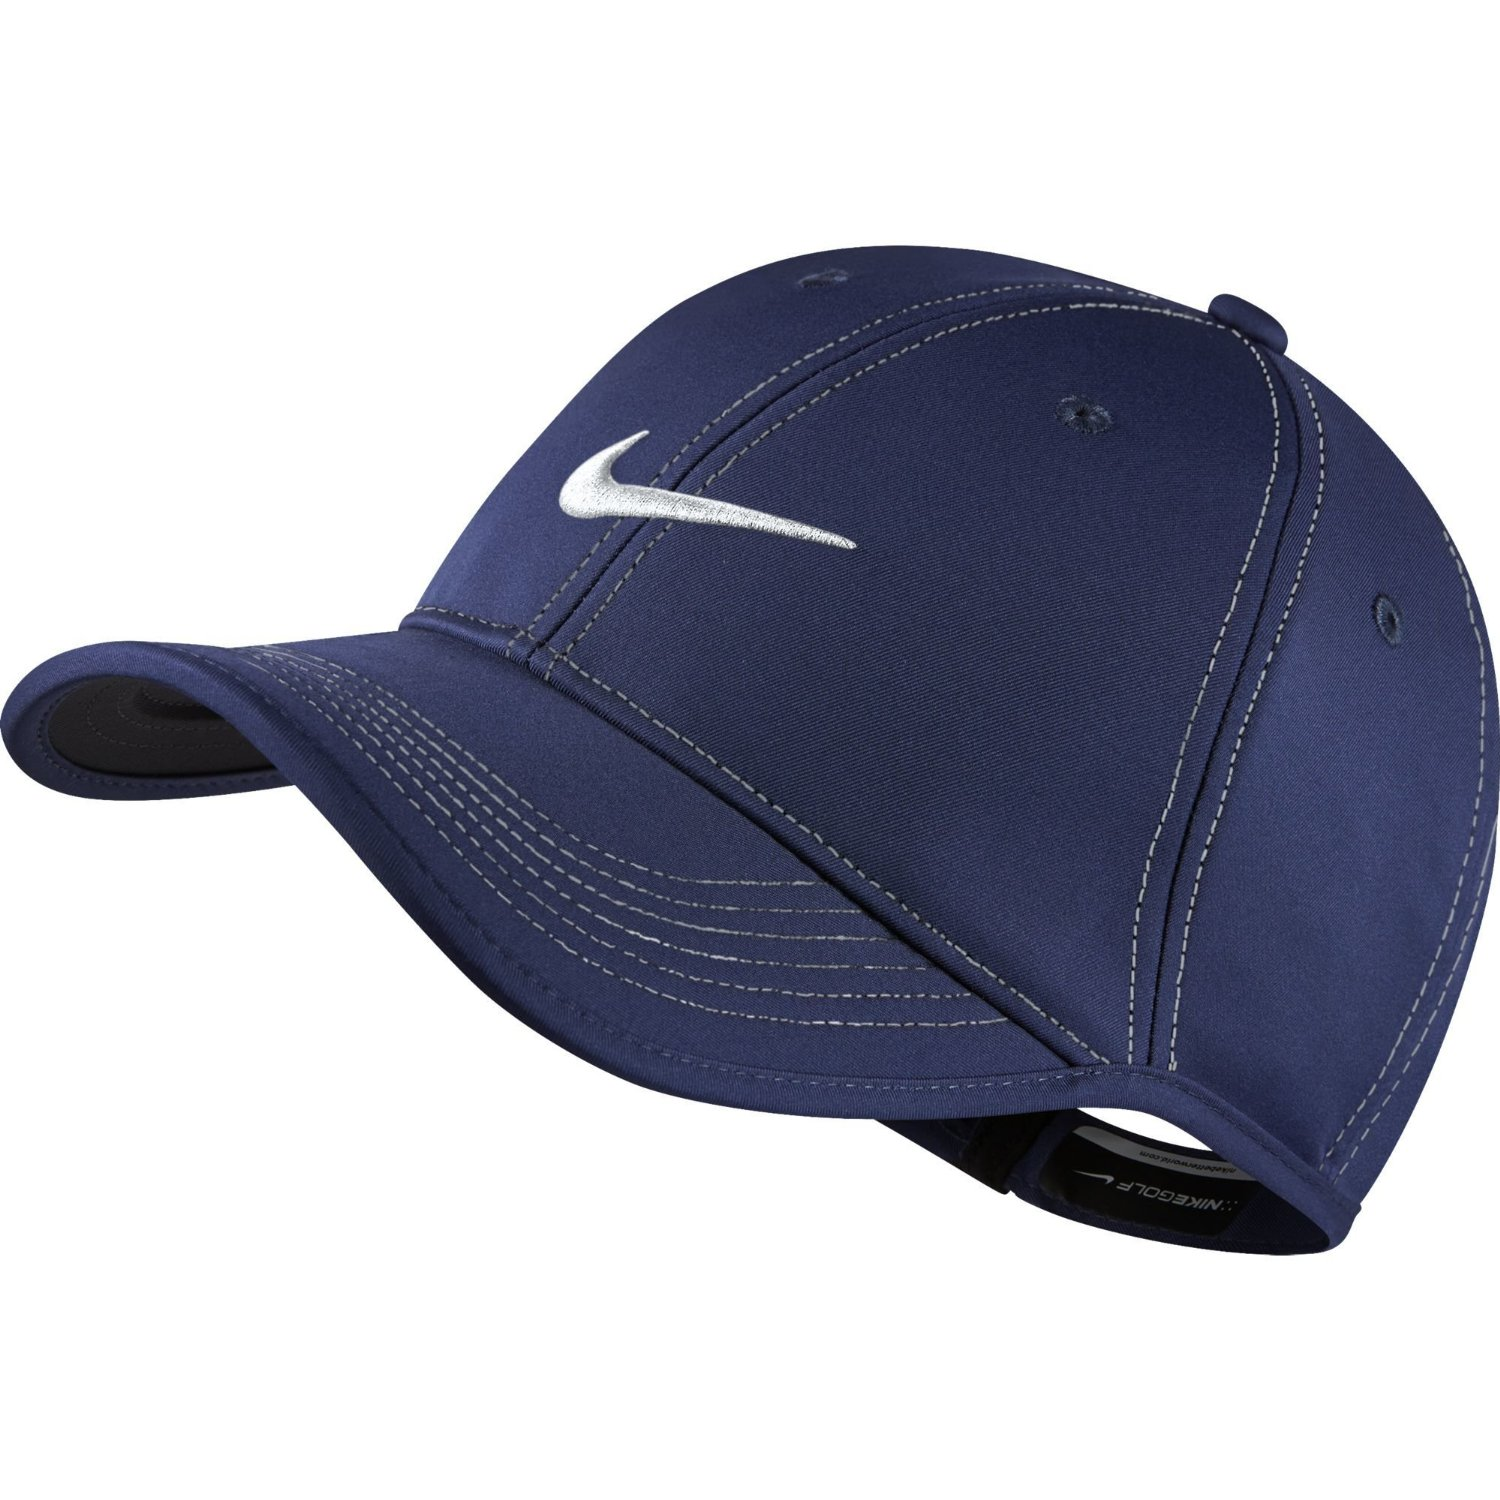 a78571da218 Get Quotations · NEW Nike Ultralight Contrast Stitch Midnight Navy White  Adjustable Hat Cap